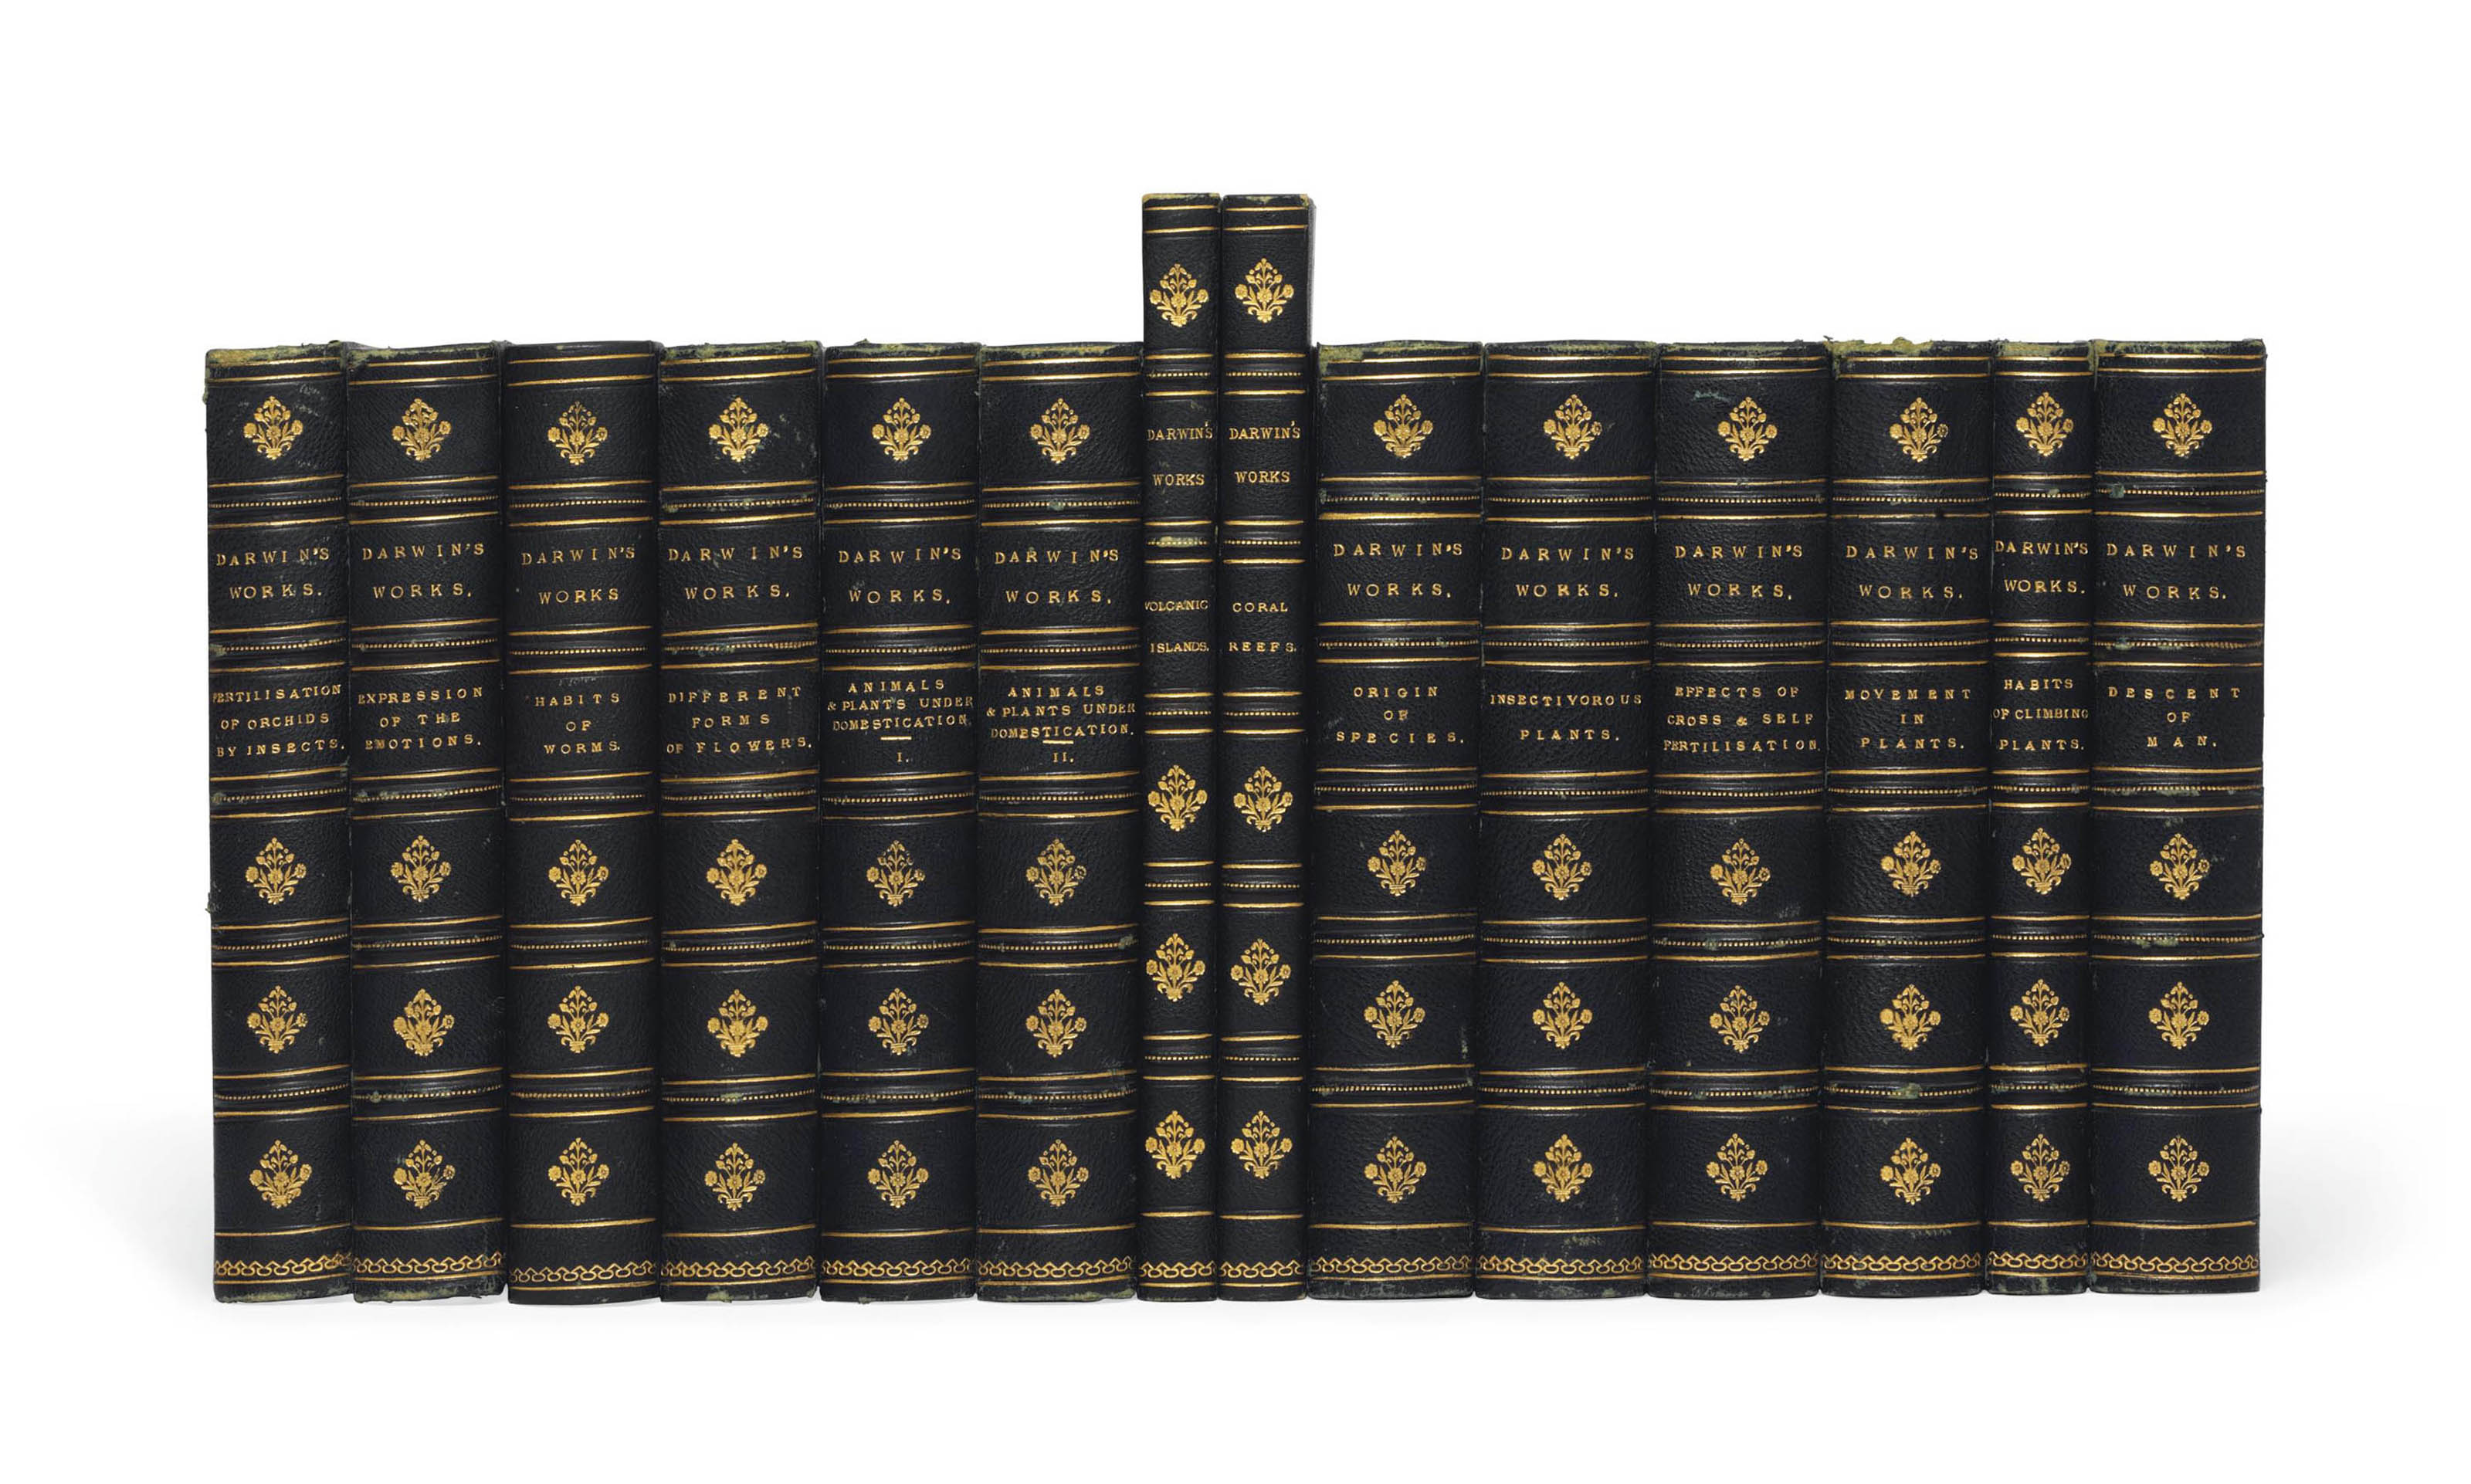 DARWIN, Charles (1809-1882). A collection of 13 of his works in 14 volumes, 19th-century editions, all published in London, and all by John Murray, excepting the first two named works: The Structure and Distribution of Coral Reefs. Smith, Elder and Co., 1842. FIRST EDITION. Freeman 271. -- Geological Observations on the Volcanic Islands. Smith, Elder and Co., 1844. FIRST EDITION. Freeman 272. -- The Expression of the Emotions of Man and Animals. 1872. FIRST EDITION, second issue, plates numbered in Arabic. (Lacking the last two leaves of integral advertisements.) Freeman 1142. -- The Variation of Animals and Plants Under Domestication ... Second edition, revised, fourth thousand. 1875. 2 volumes. Freeman 880. -- Insectivorous Plants ... third thousand. 1875. Half-title, errata slip. Freeman 1219. -- The Movements and Habits of Climbing Plants ... second thousand. 1876. Half-title. Reprint of the second edition. Freeman 837. -- The Effects of Cross and Self Fertilisation in the Vegetable Kingdom. FIRST EDITION. 1876. Errata leaf. Freeman 1249. -- The Various Contrivances by which Orchids are Fertilised by Insects ... Second edition, revised. 1877. Half-title. Freeman 801. -- The Different Forms of Flowers on Plants of the Same Species. 1877. FIRST EDITION. Freeman 1277. -- The Descent of Man, and Selection in Relation to Sex ... Second edition (thirteenth thousand), revised and augmented. London: 1879. Half-title. Freeman 951. -- The Power of Movement in Plants. 1880. Half-title. FIRST EDITION. Freeman 1325. -- The Origin of Species by means of Natural Selection ... Sixth edition, with additions and corrections to 1872 (twenty-second thousand). 1880. Half-title. Freeman 405. -- The Formation of Vegetable Mould through the action of Worms ... Third thousand. 1881. Errata slip. Freeman 1359. 13 volumes, 8° (first two named works 215 x 133mm; the remainder 184 x 125mm excepting Descent of Man 184 x 115mm). Uniformly bound in late 19th-century dark-green half morocco ove